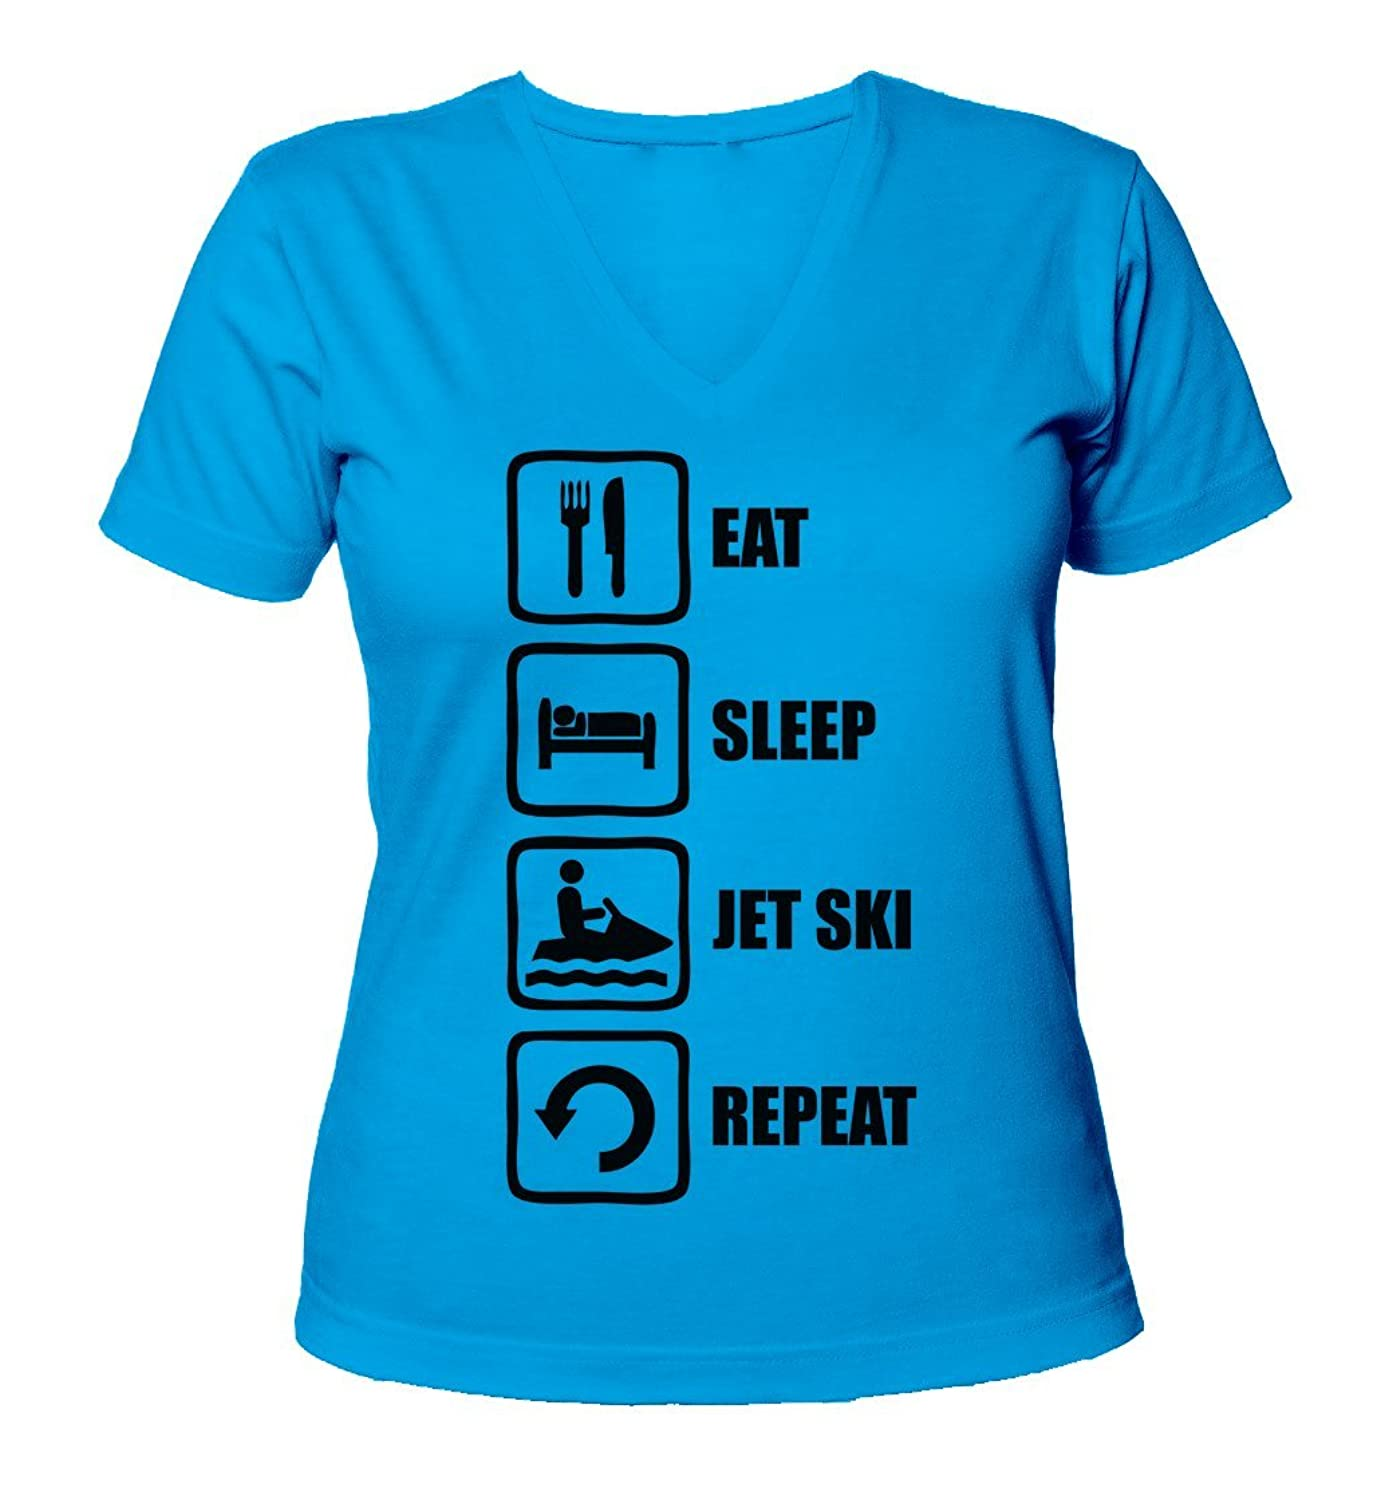 Eat Sleep Jet Ski Repeat Black Graphic Women's V-Neck T-Shirt